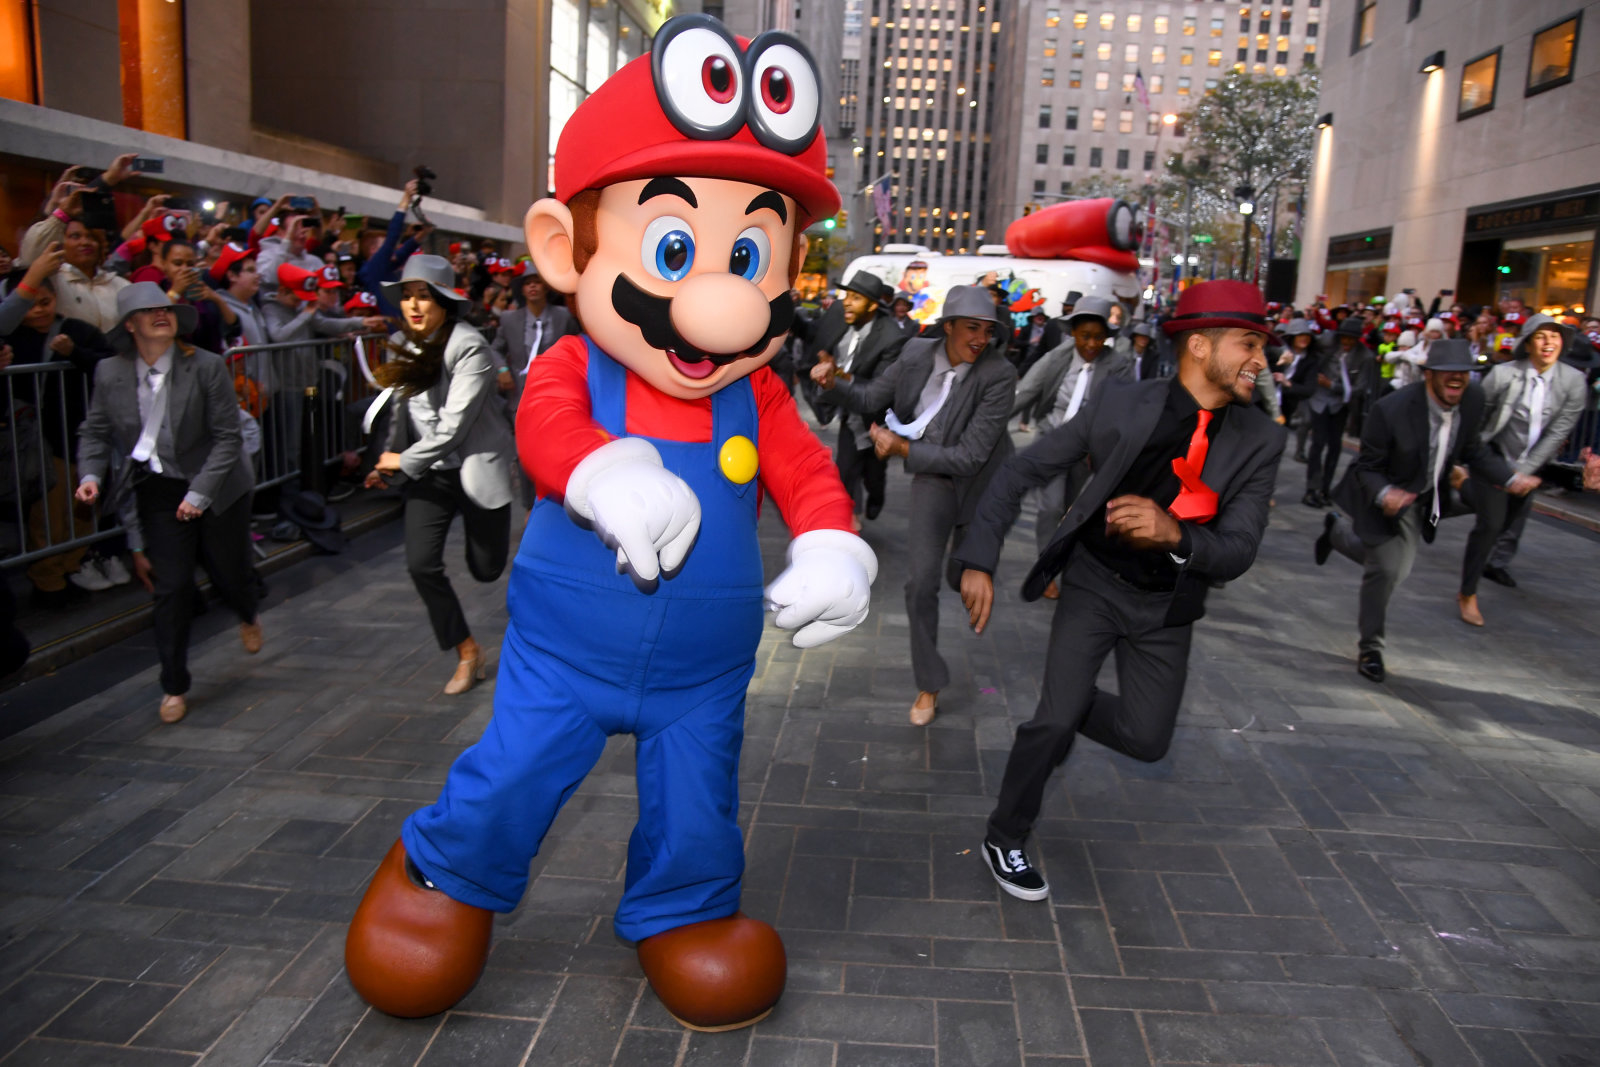 NEW YORK, NY - OCTOBER 26:  Mario and Jordan Fisher, actor, recording artist and current contestant on Dancing with the Stars co-hosts the Super Mario Odyssey for Nintendo Switch launch event on October 26, 2017 at Rockefeller Plaza in New York City.  (Photo by Dave Kotinsky/Getty Images for Nintendo of America)